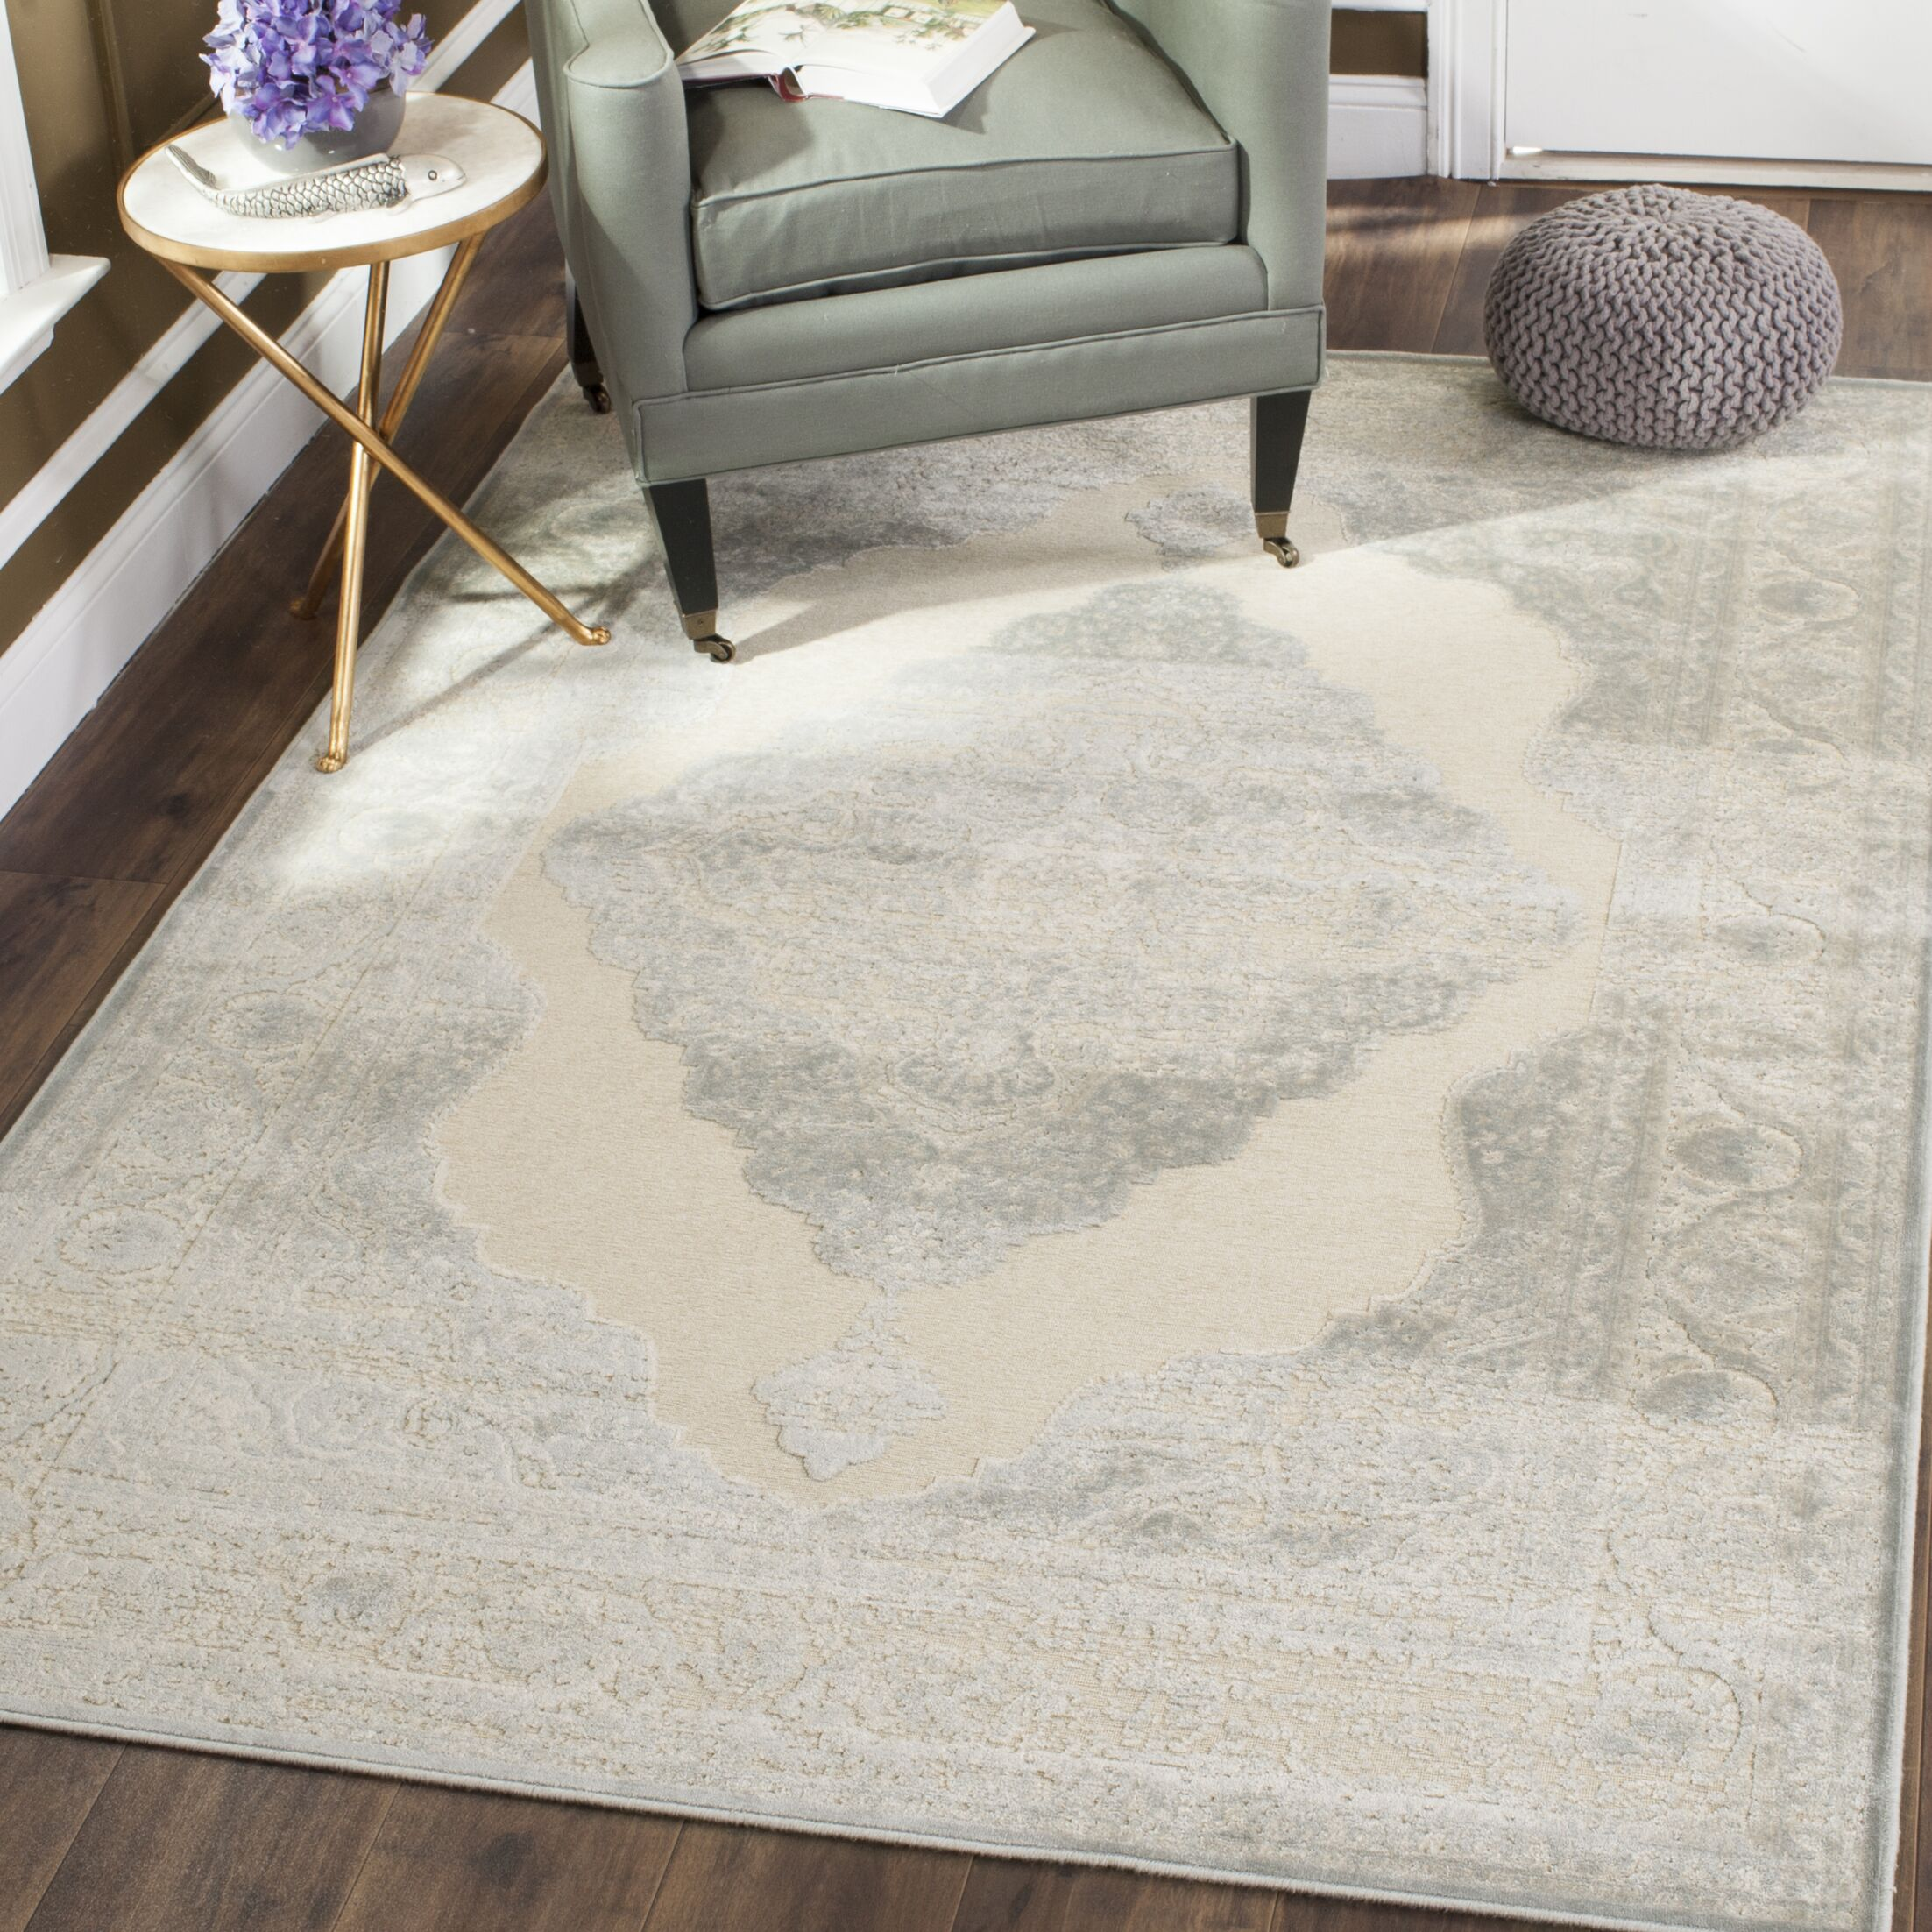 Ellicott Cream Area Rug Color: Creme, Rug Size: 4' x 5'7